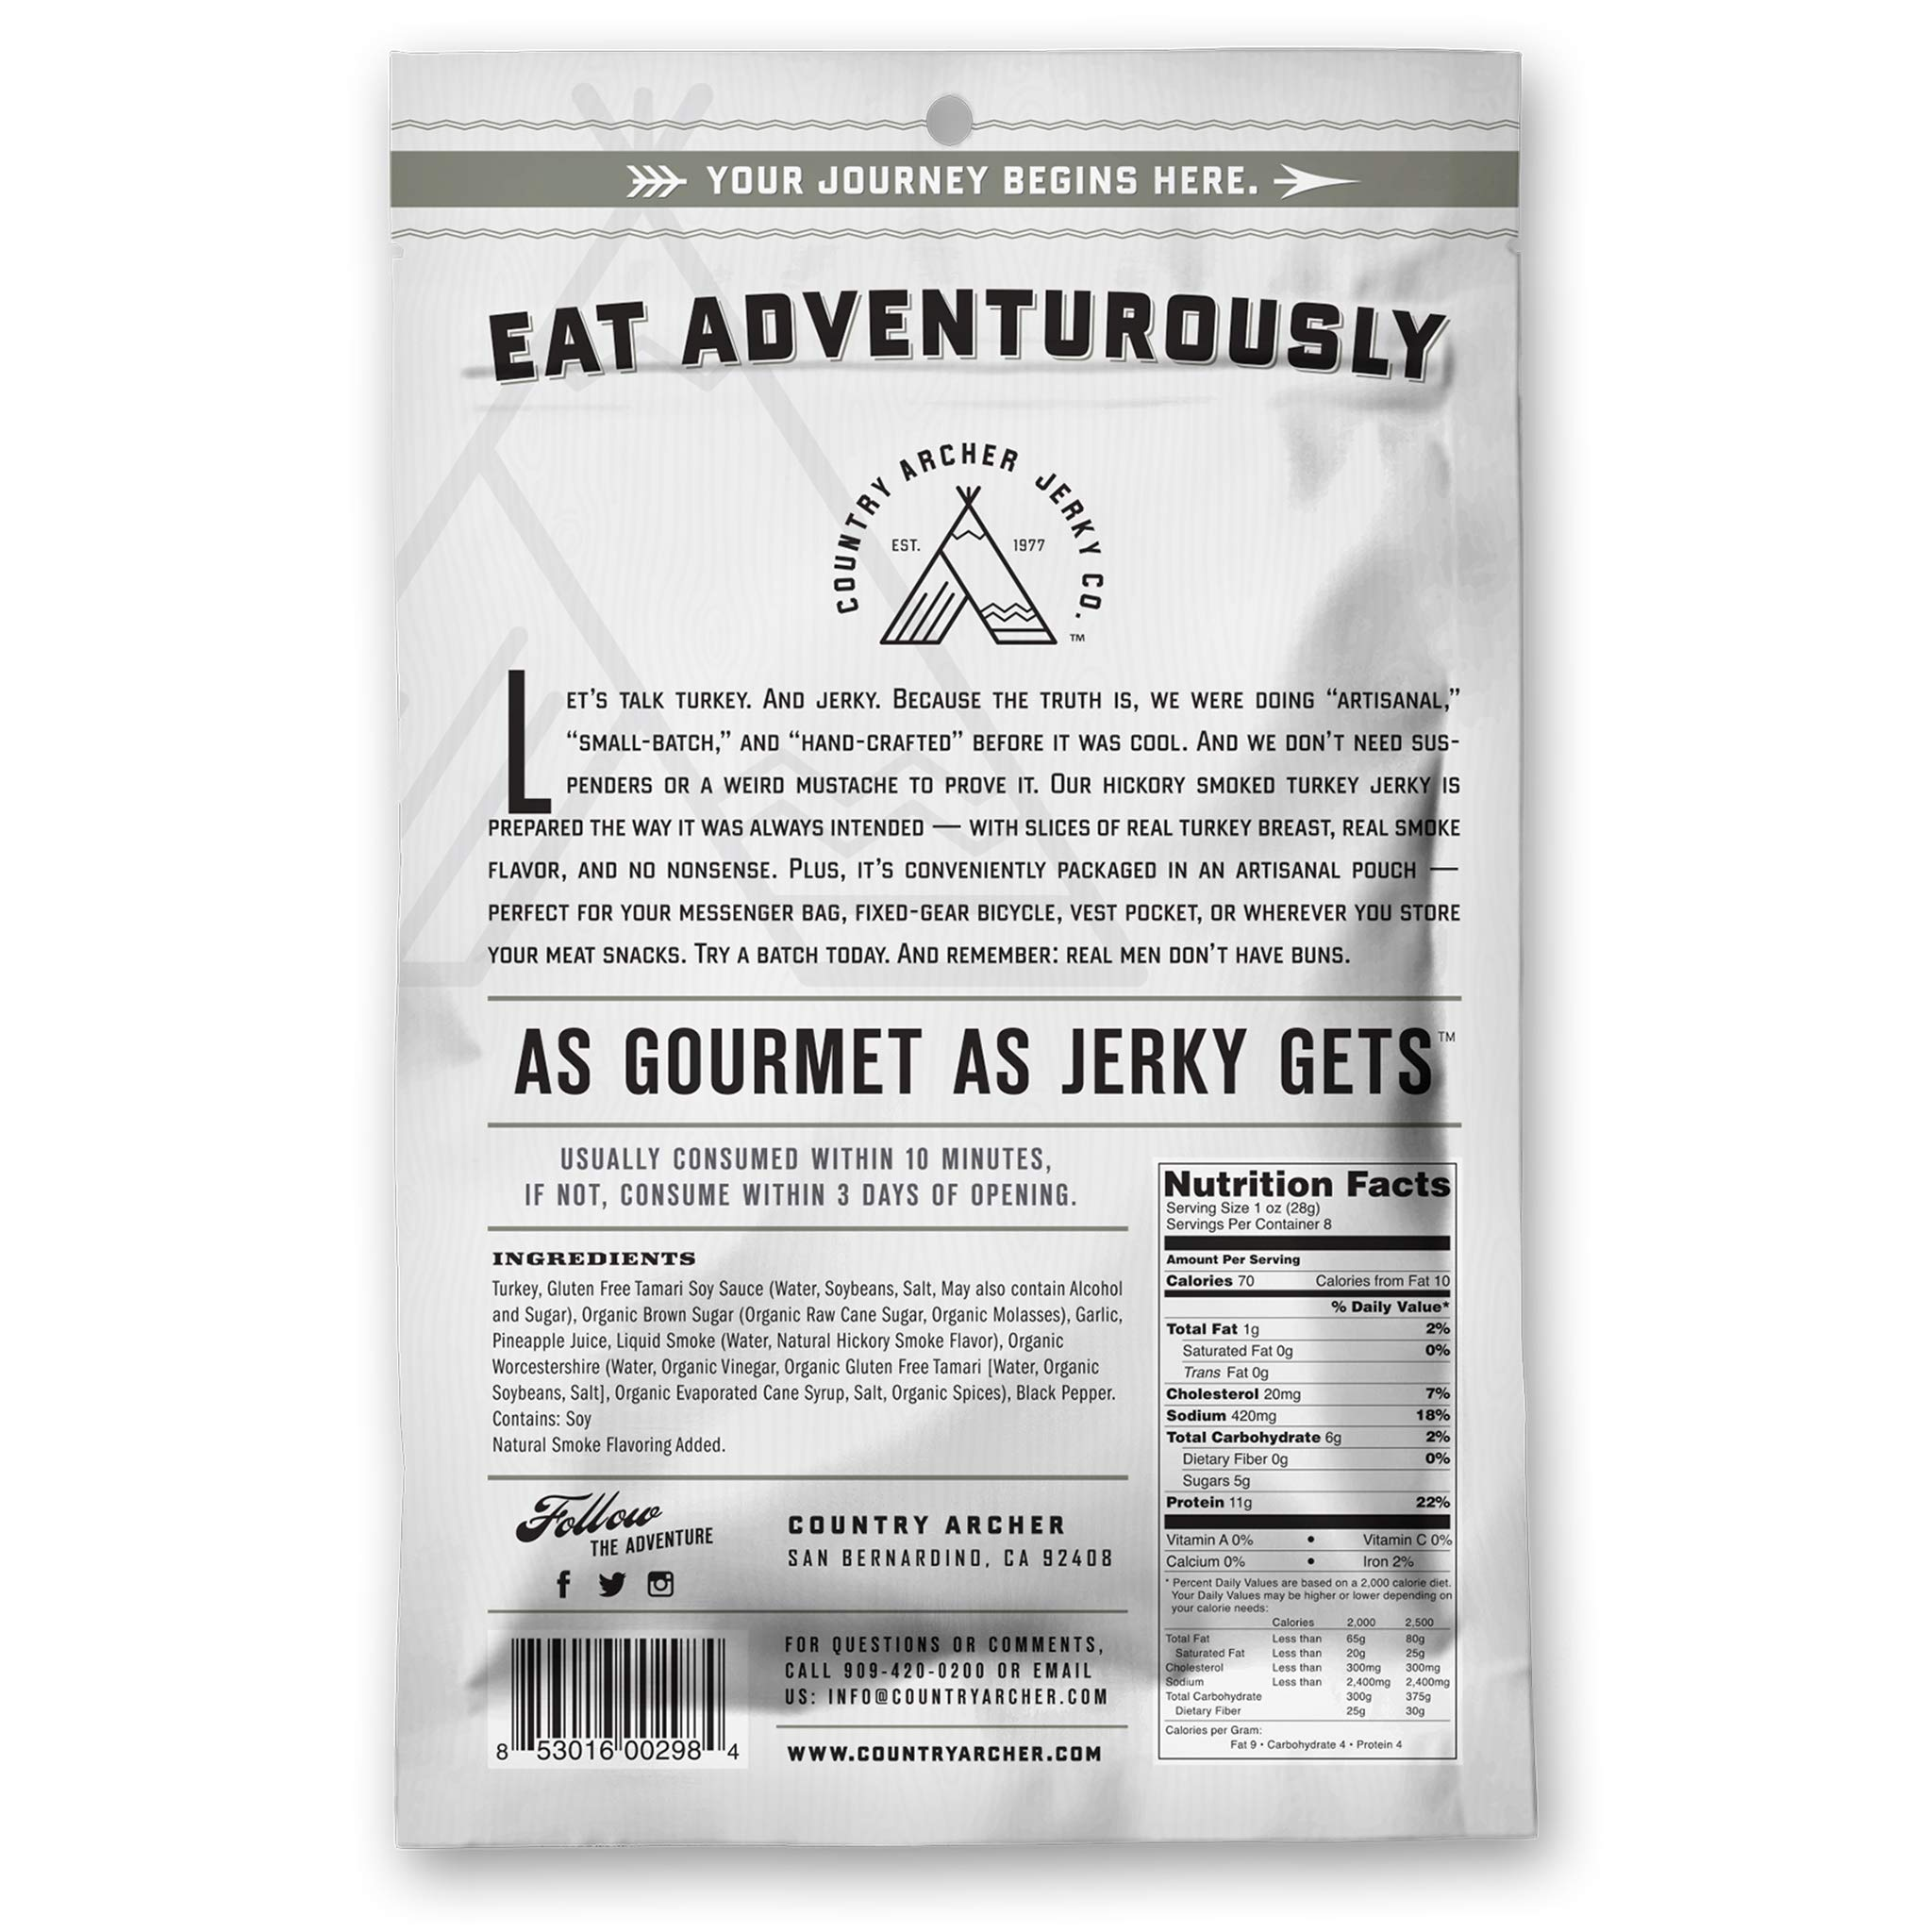 Hickory Smoke Turkey Jerky by Country Archer | Antibiotic Free | Gluten Free | 8 Ounce by Country Archer (Image #2)